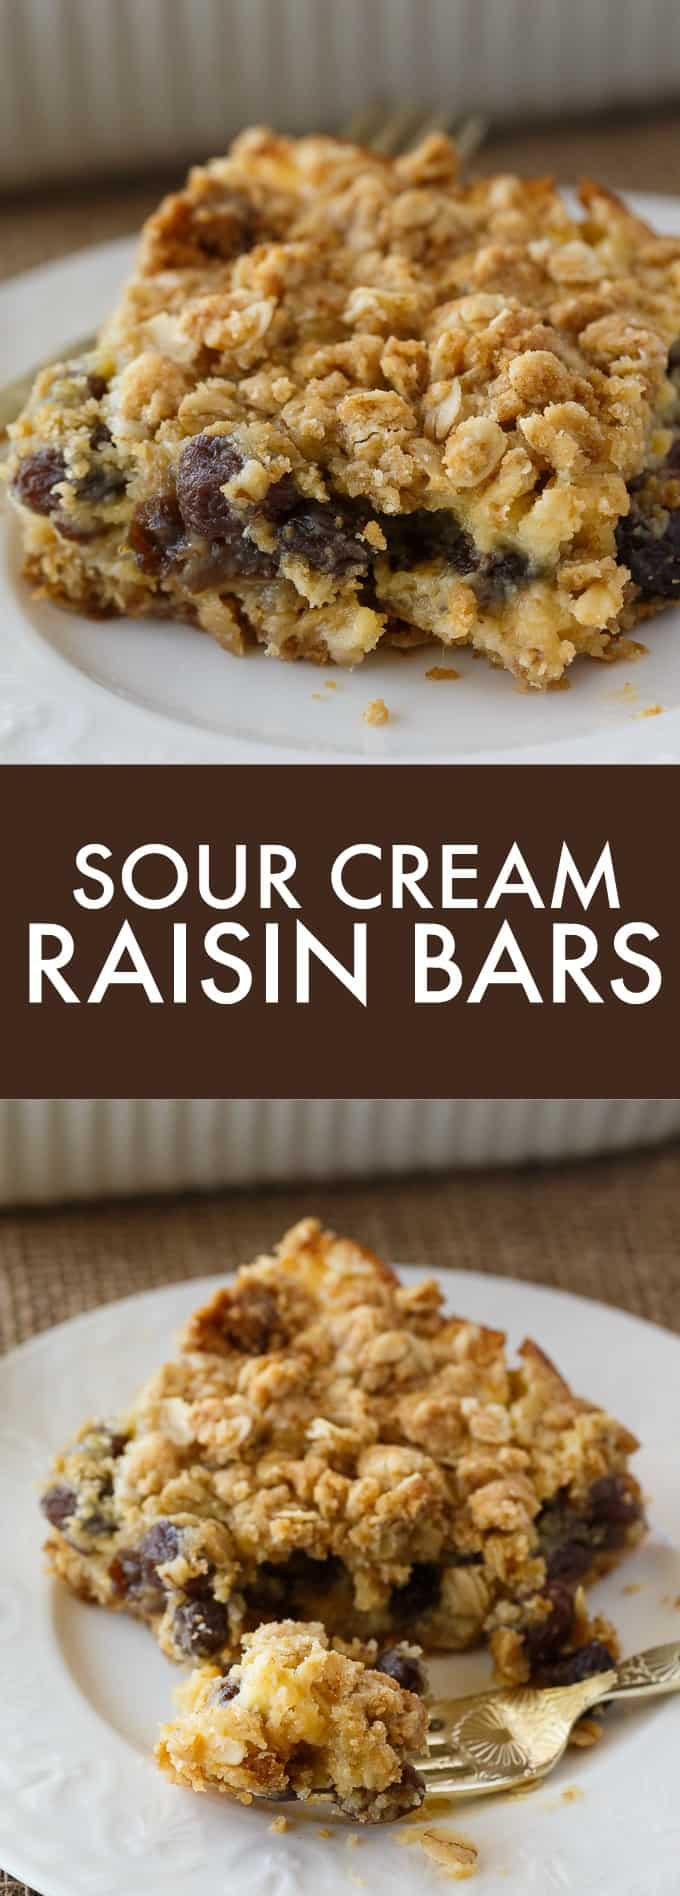 Sour Cream Raisin Bars Recipe Fun Baking Recipes Raisin Cookie Recipe Raisin Pie